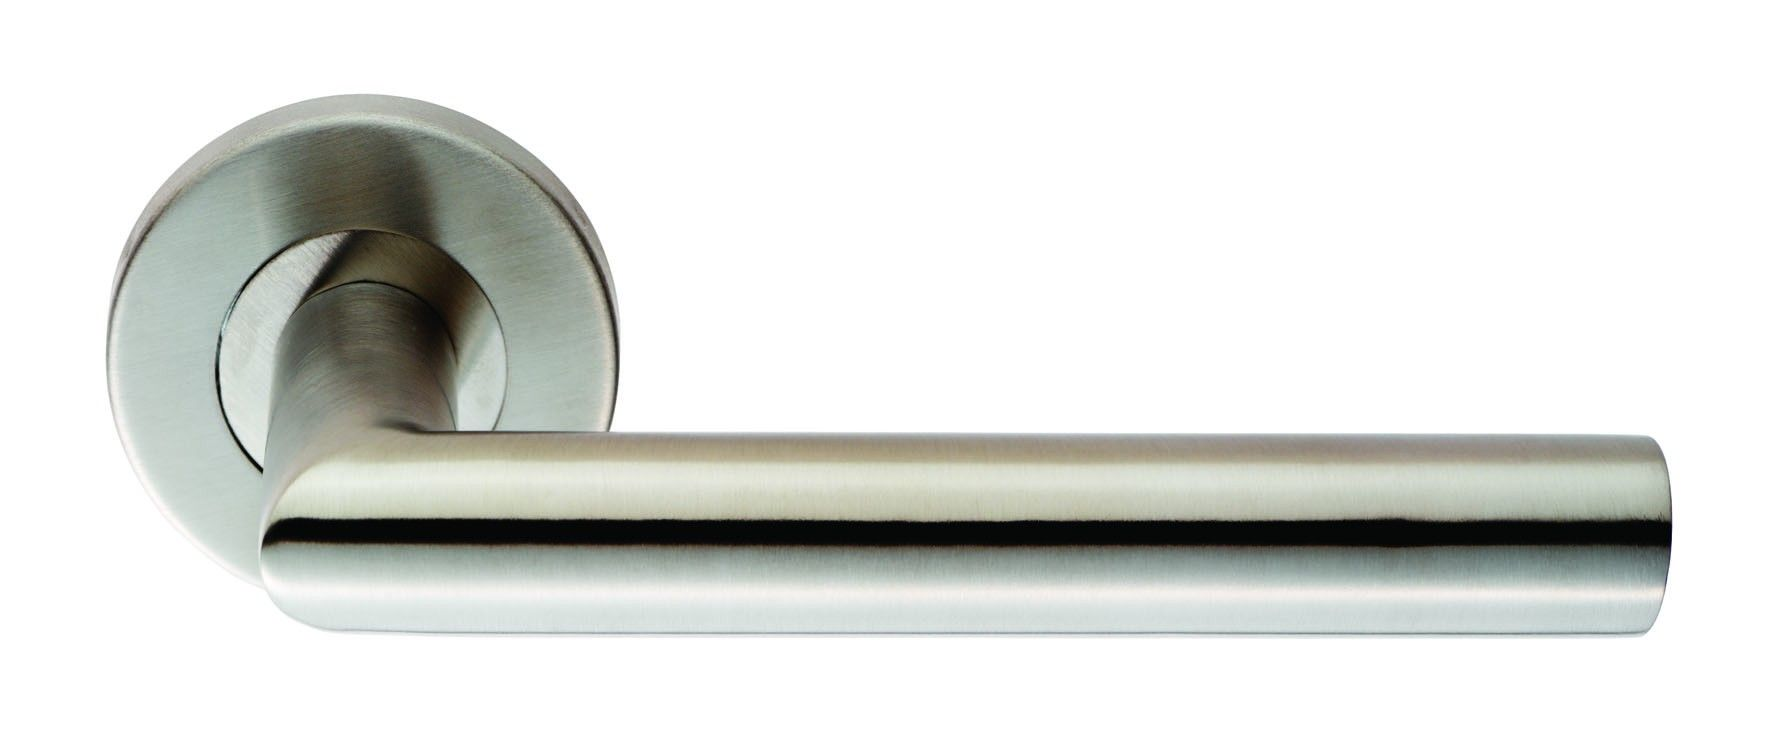 Steelworx Treviri Mitred Door Handle Bright Stainless